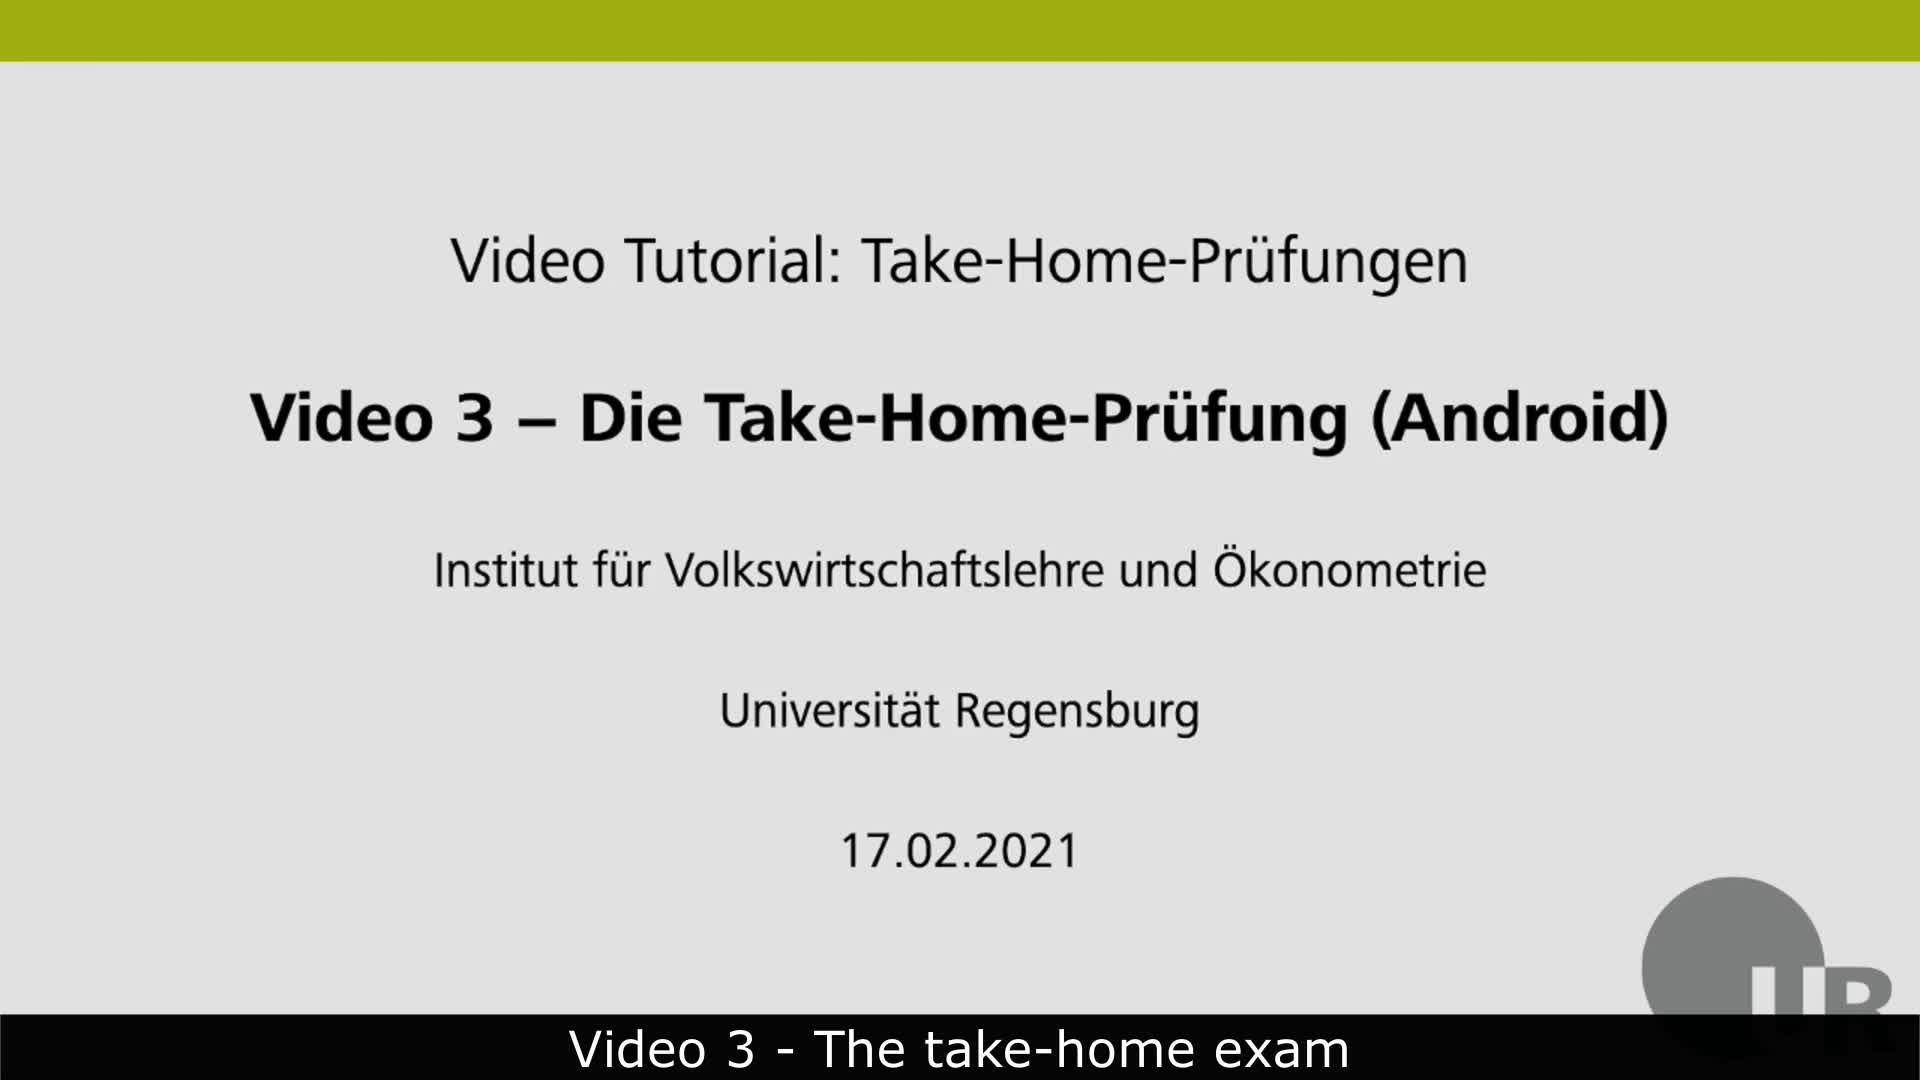 Video 3 - The Take-Home-Exam (Android, English subtitles)